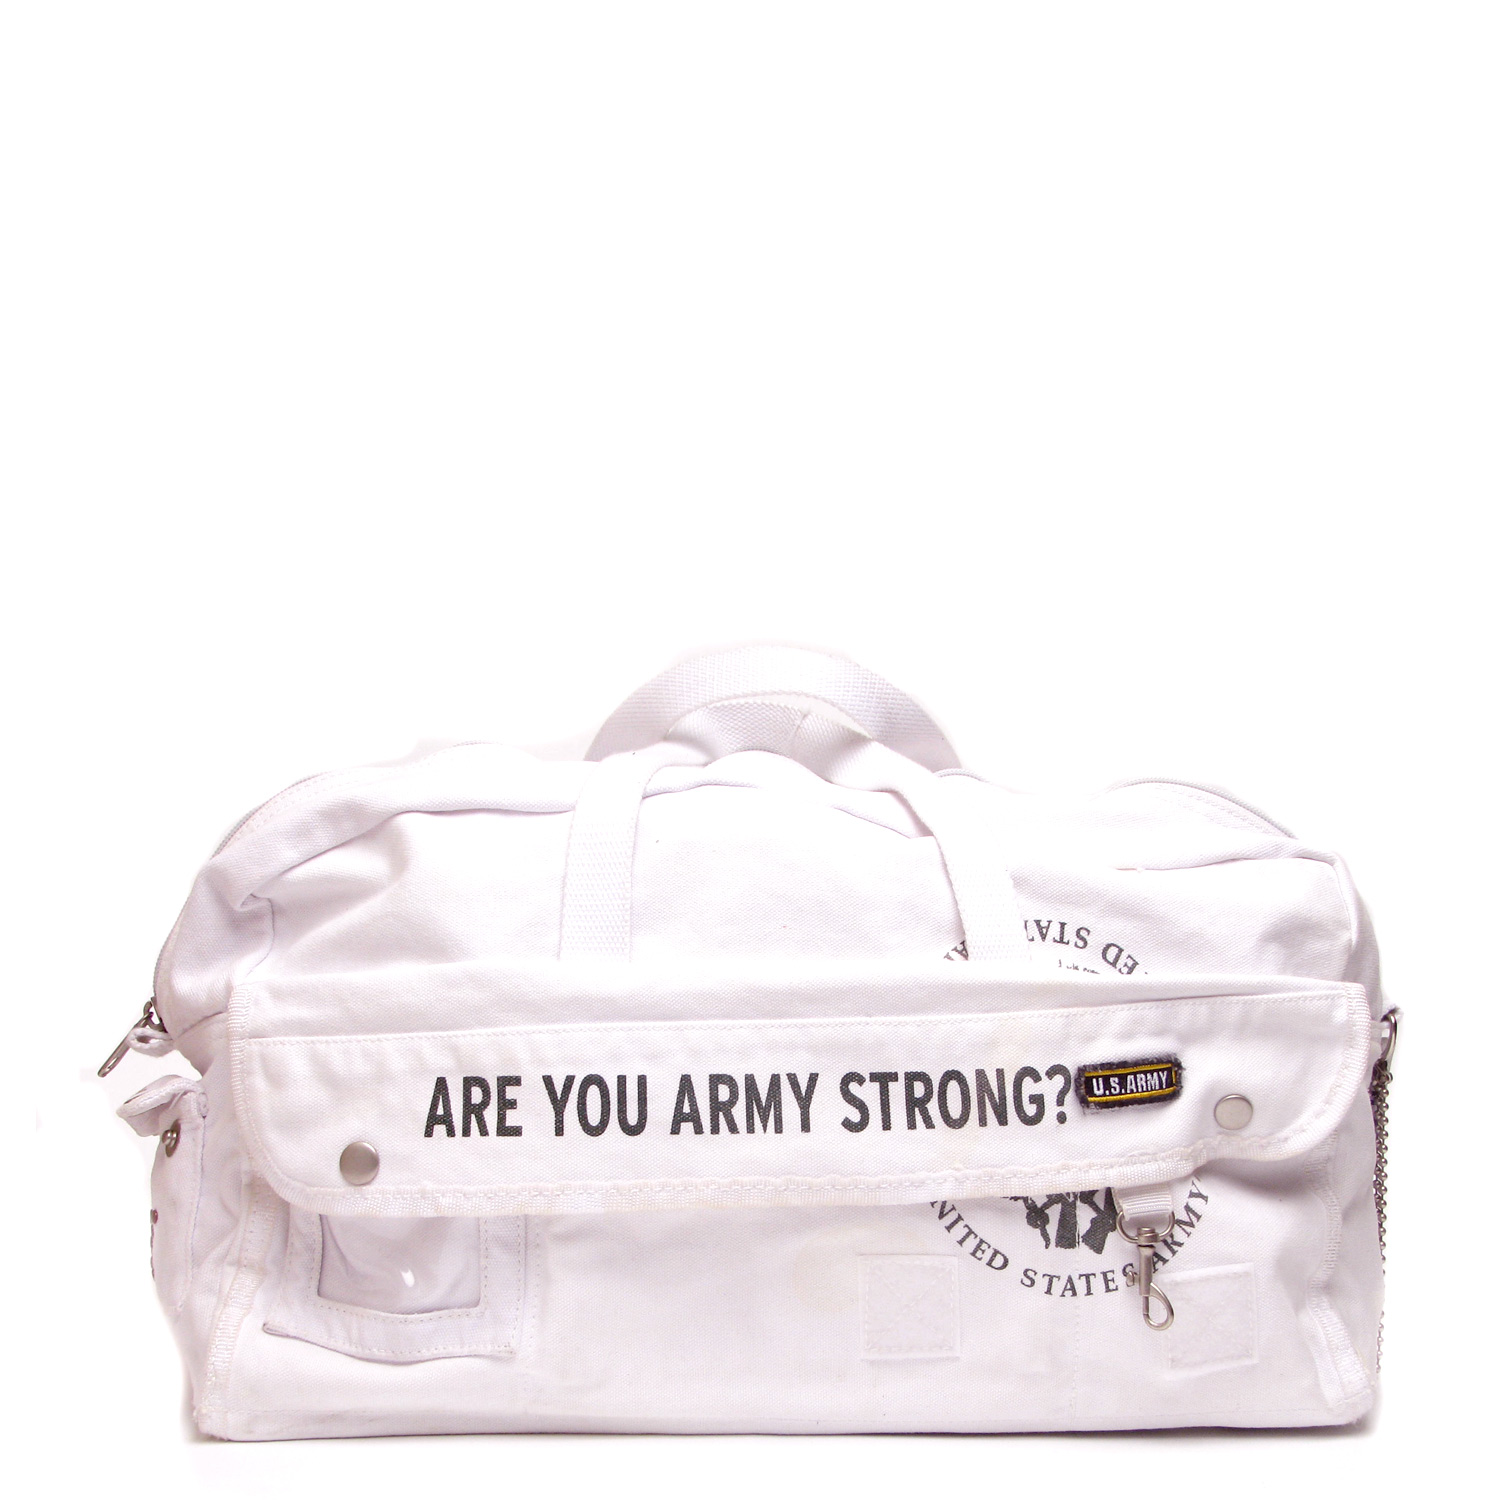 US Army Drum Duffle Bag – White